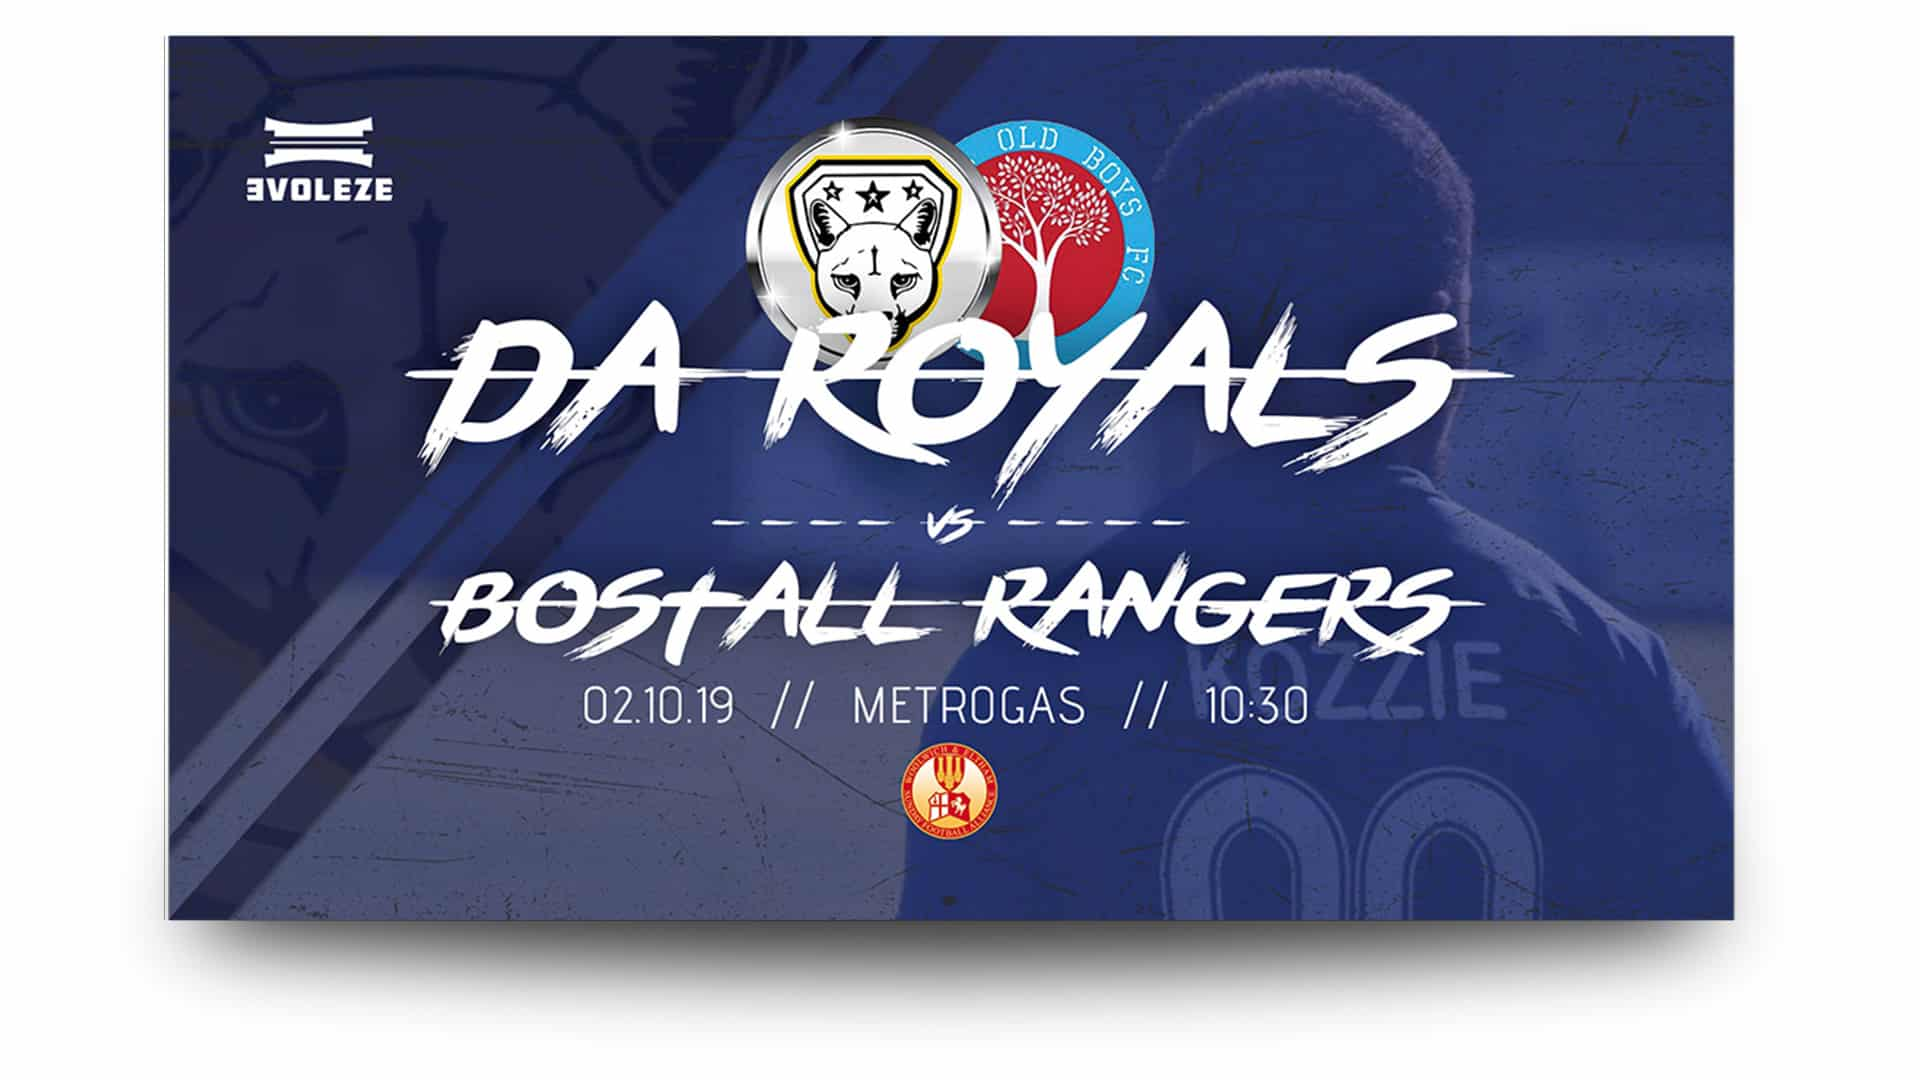 fc royals - matchday graphics set